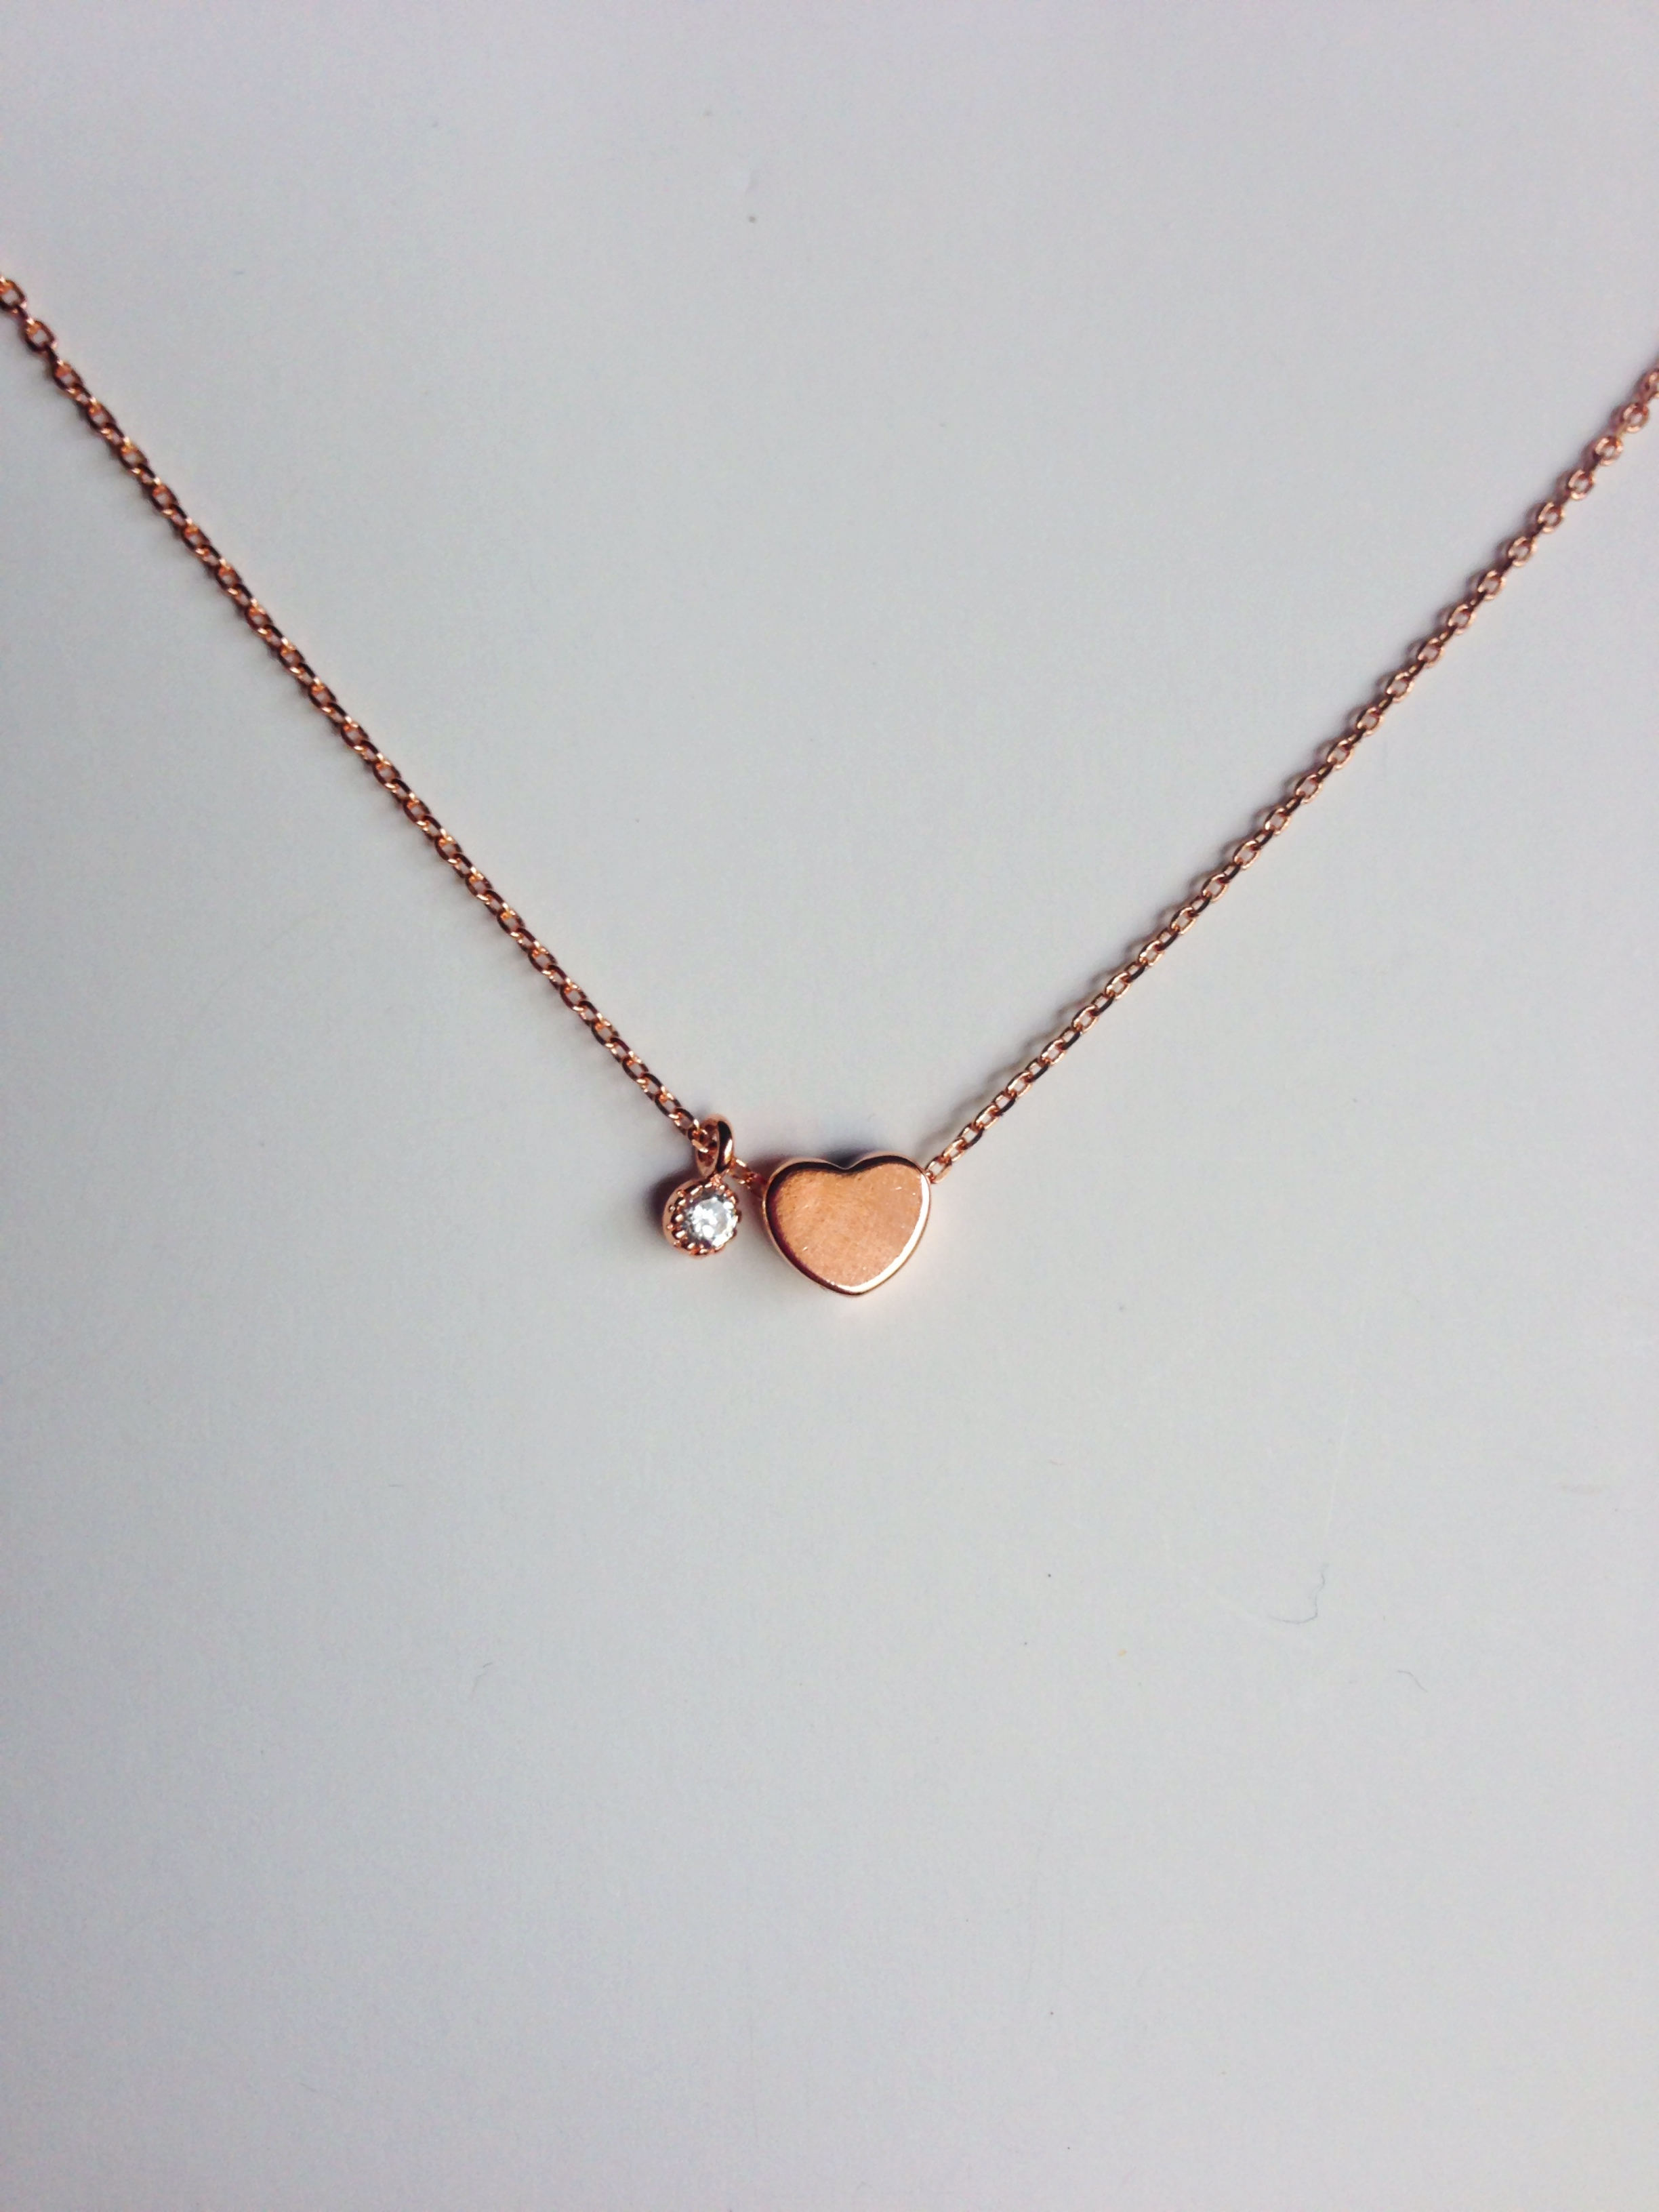 Heart Necklace Rose Gold Reija Eden Jewelry